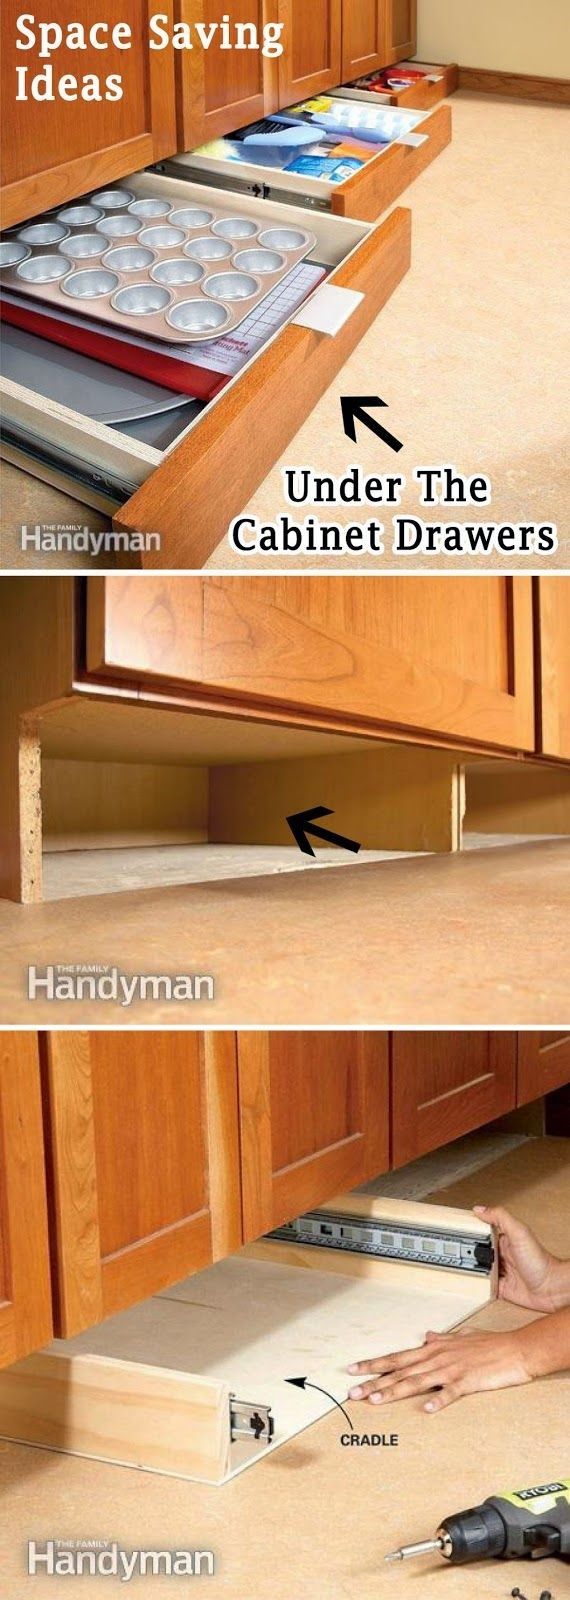 8 Under Cabinet Drawers Simphome com